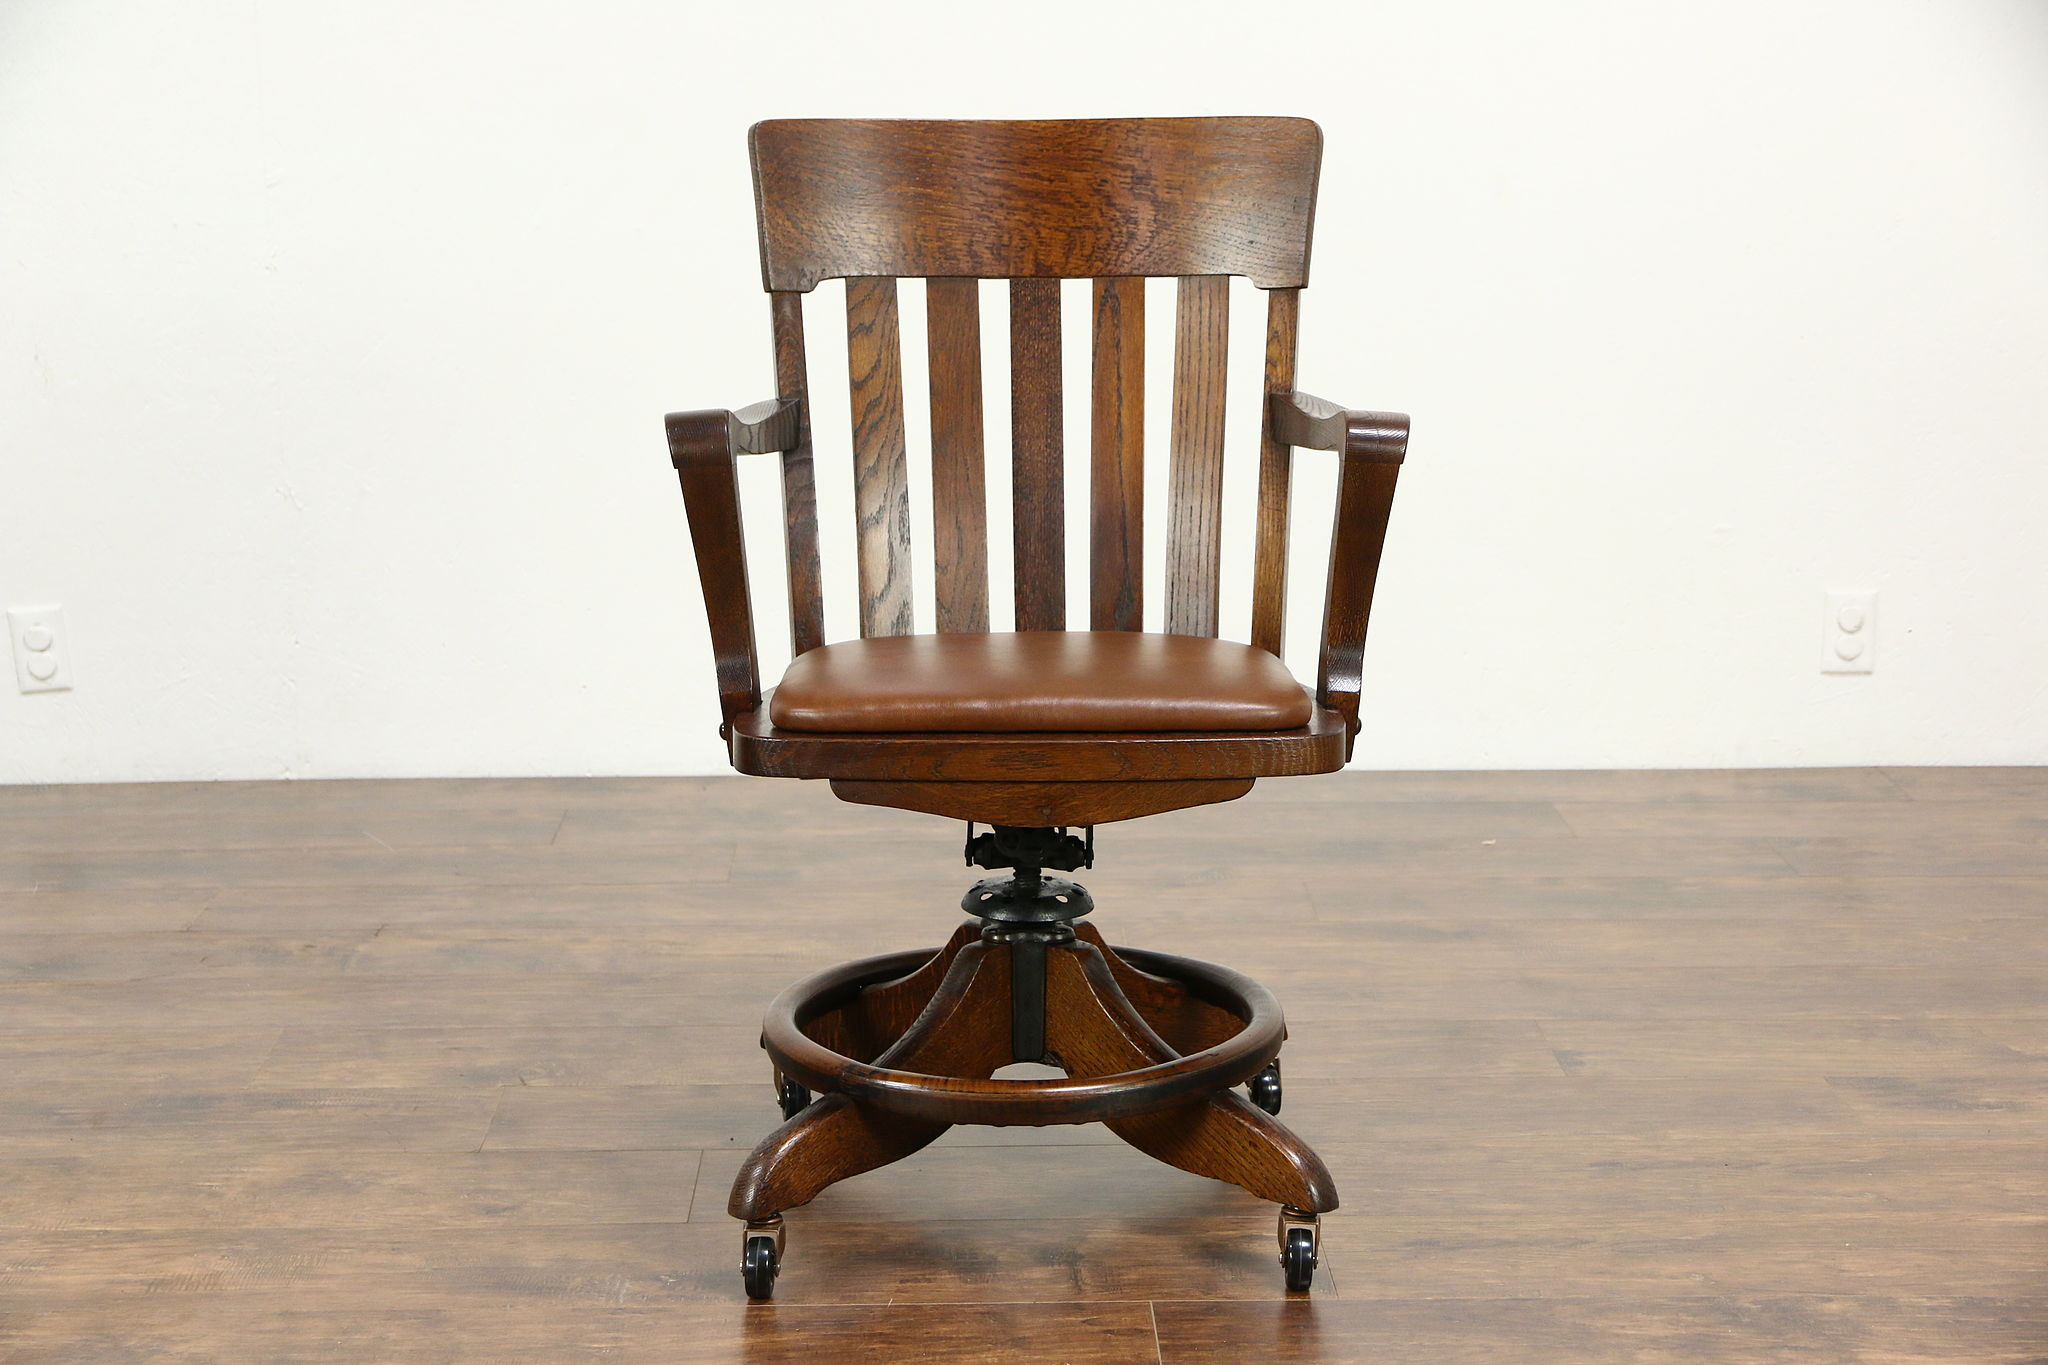 Sold Oak Swivel Adjule Antique Desk Chair With Arms Leather